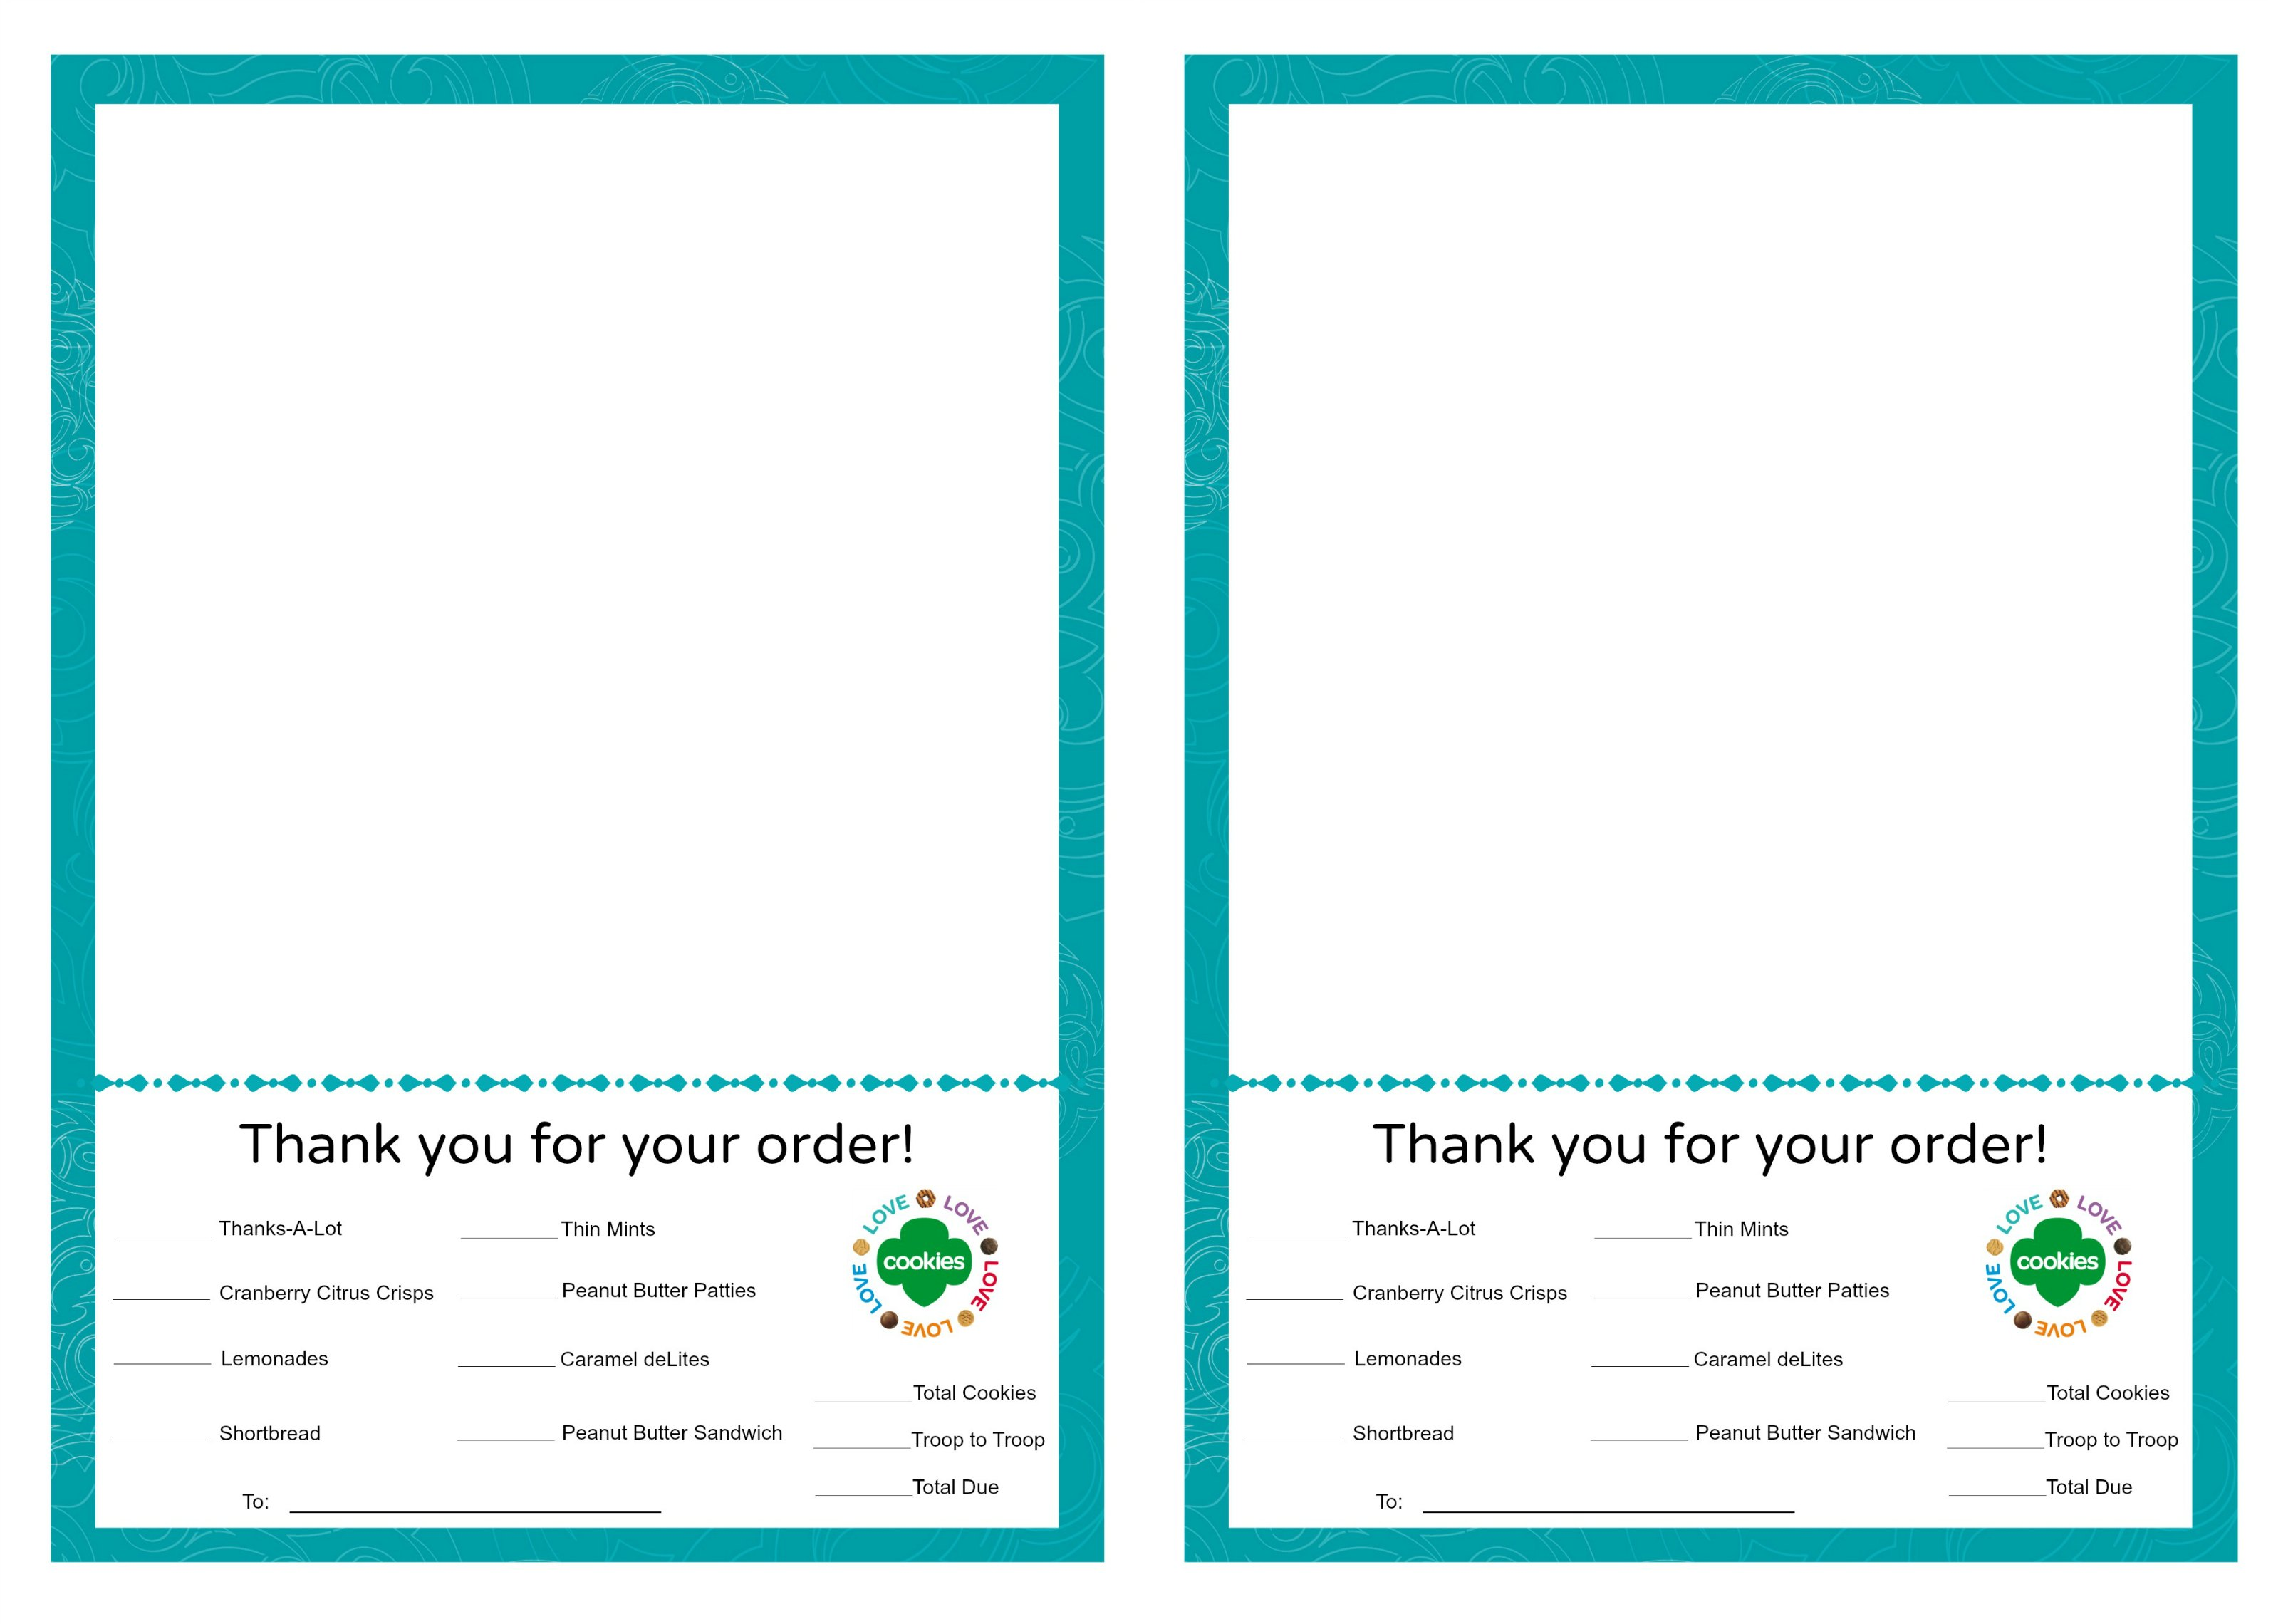 Girl scout cookie order form template - customizedessay.x.fc2.com